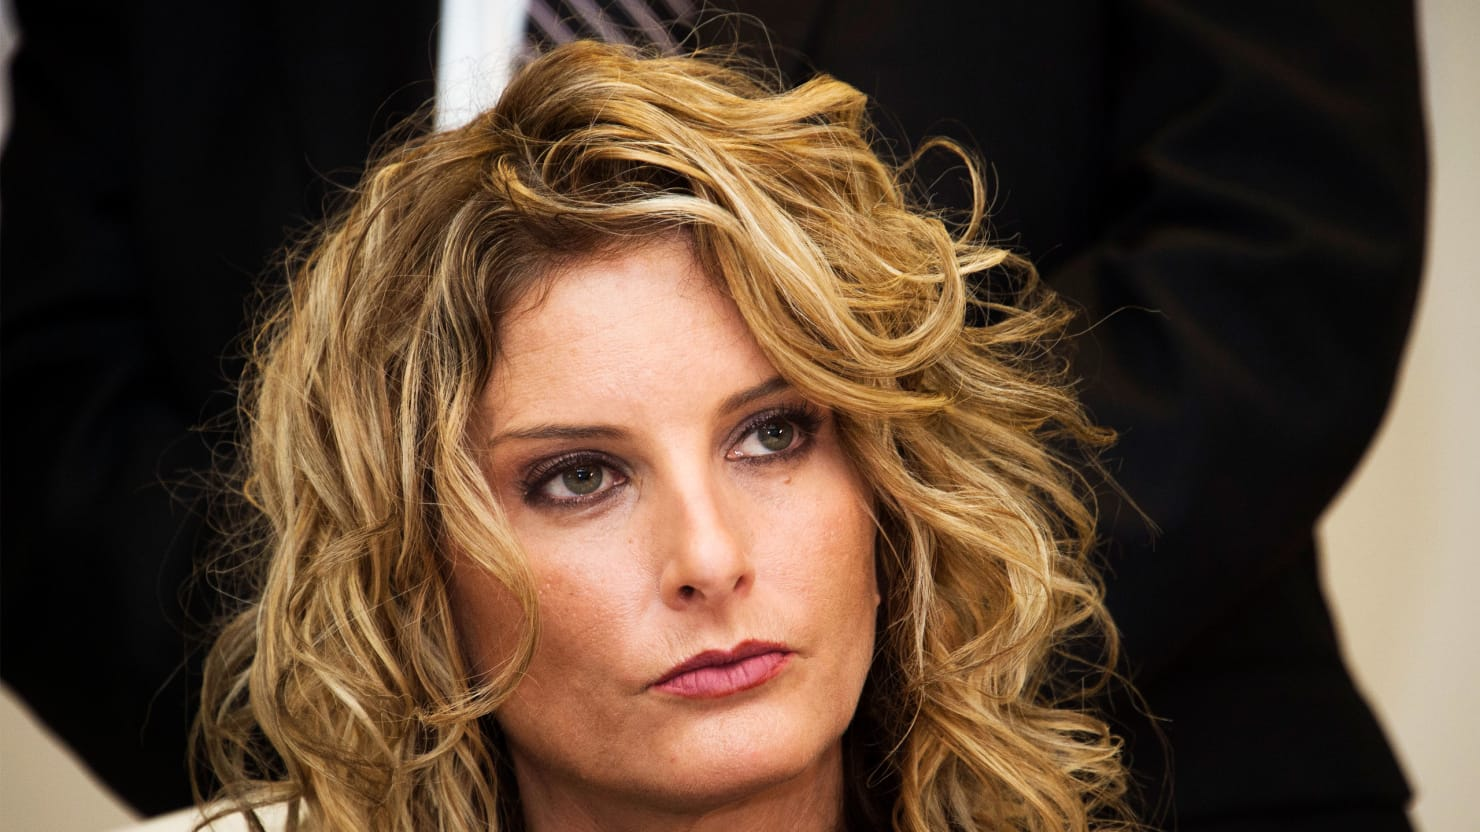 Summer Zervos Who Accused Trump Of Groping Her In  Is Suing The President Elect For Defamation After He Claims They Never Met At His Hotel